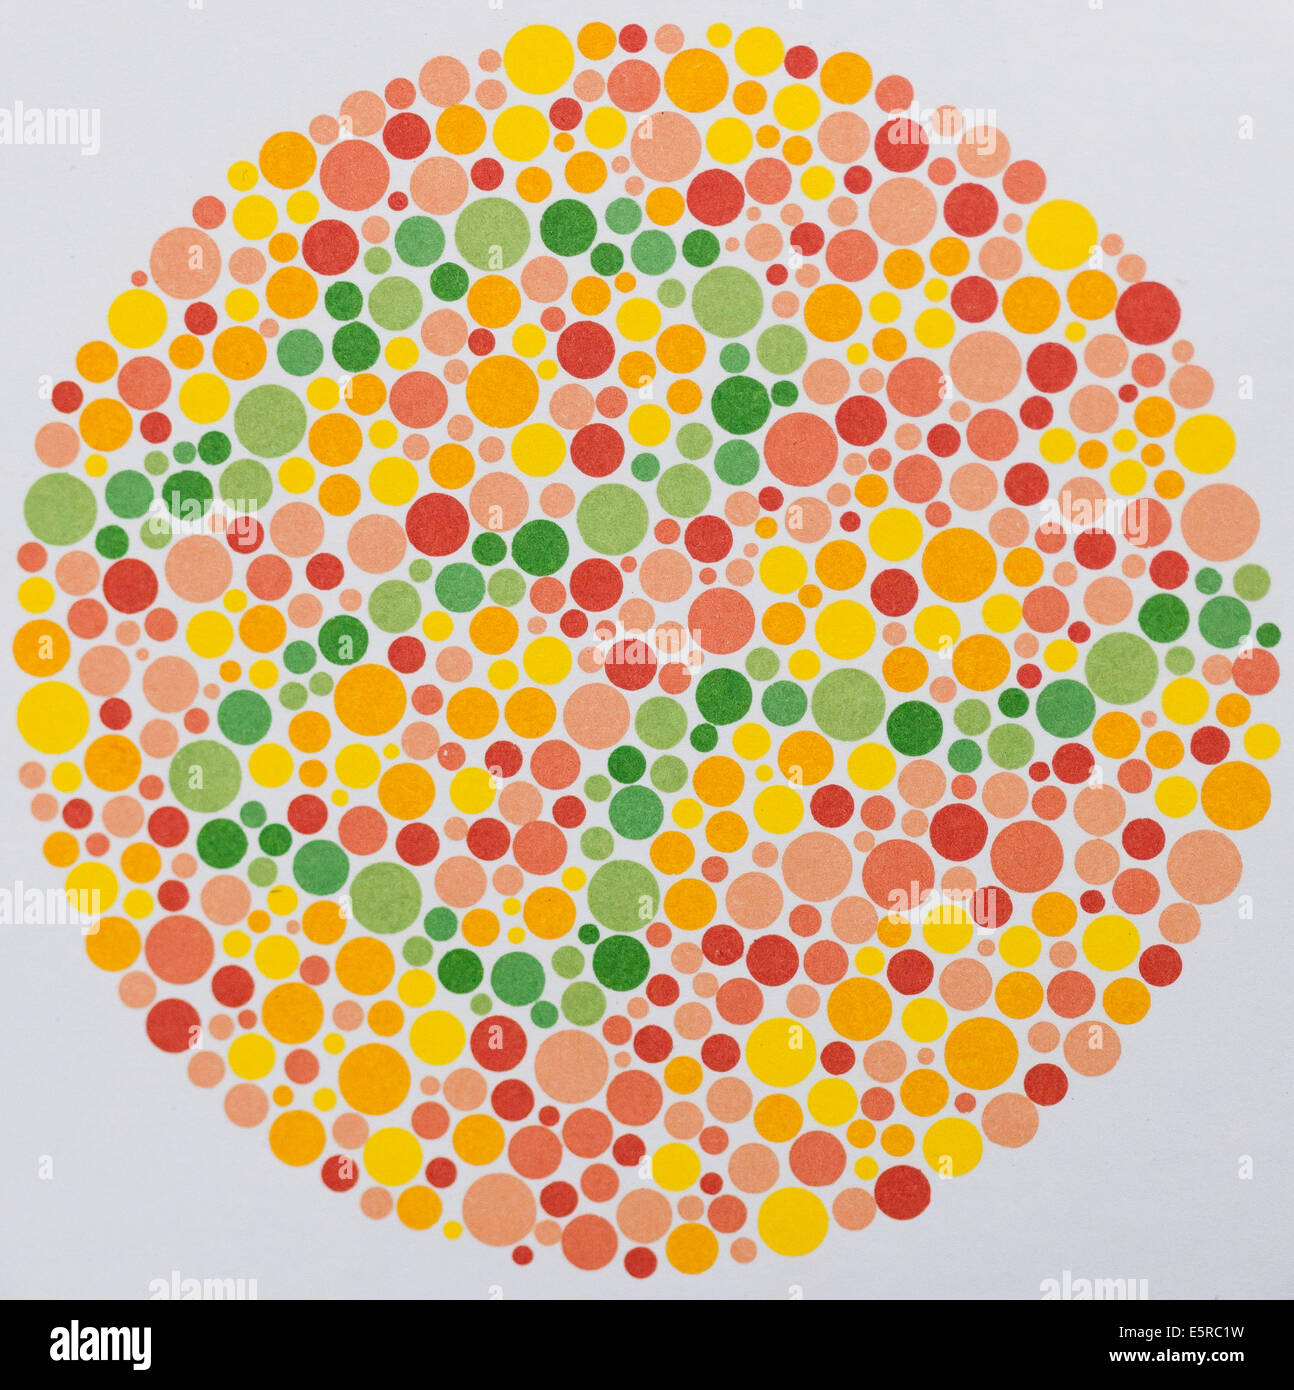 Ishihara color vision test plates used for color blindness screening ...